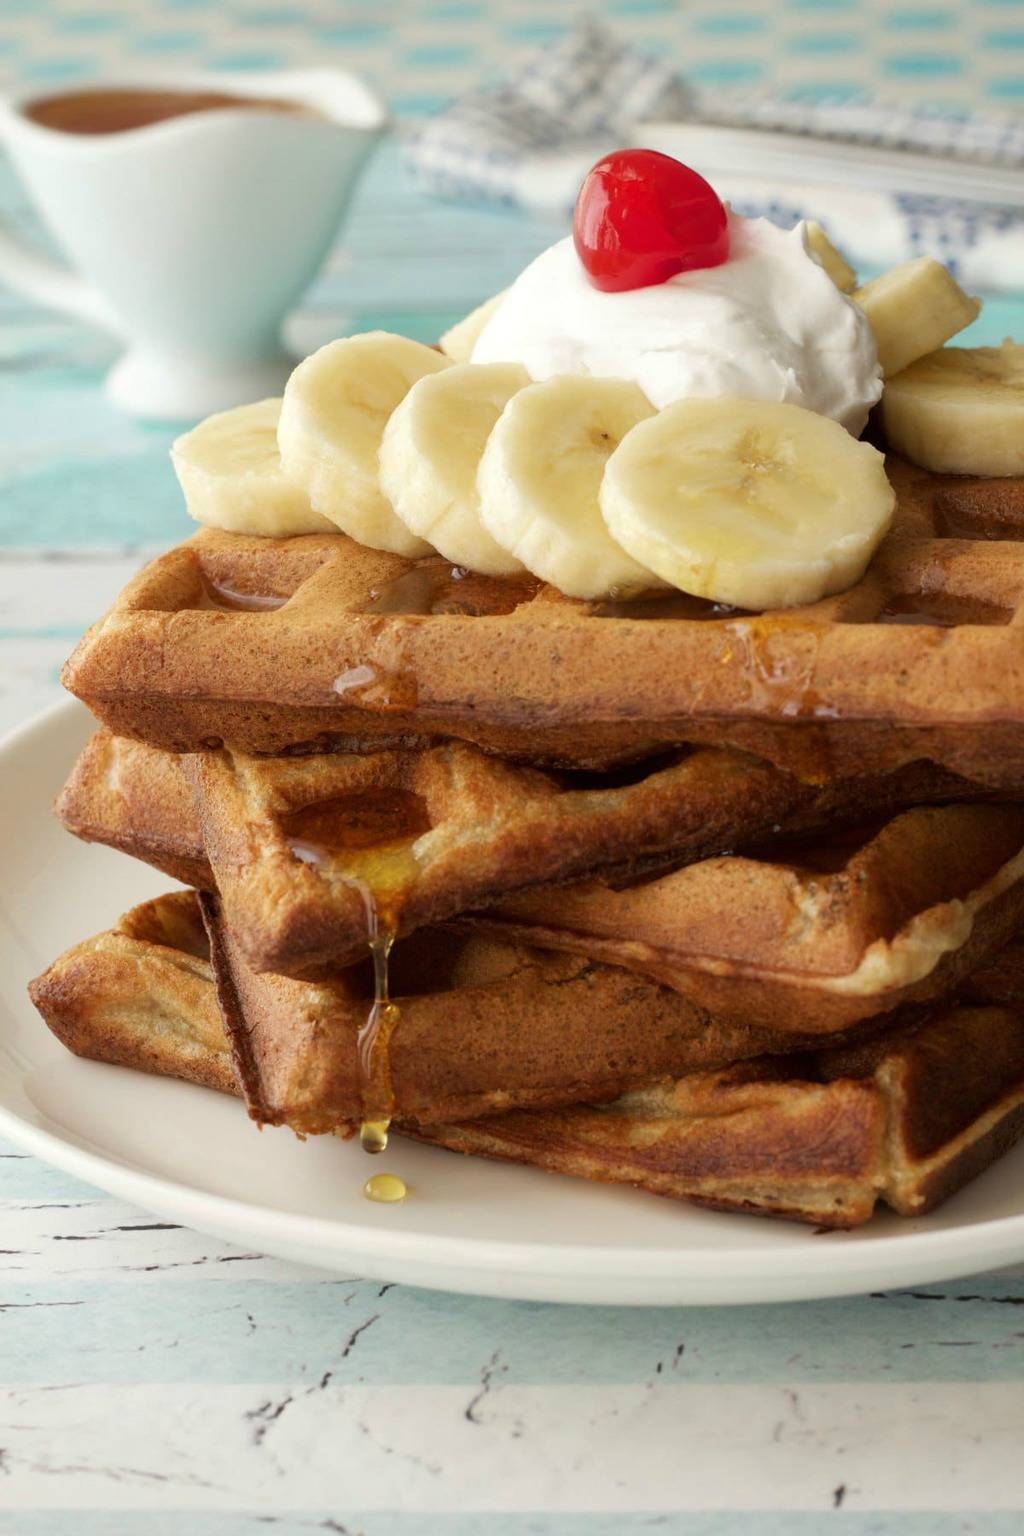 Vegan Banana Waffles. Perfect for breakfast served with whipped coconut cream, sliced bananas and syrup. #vegan #lovingitvegan #bananawaffles #breakfast